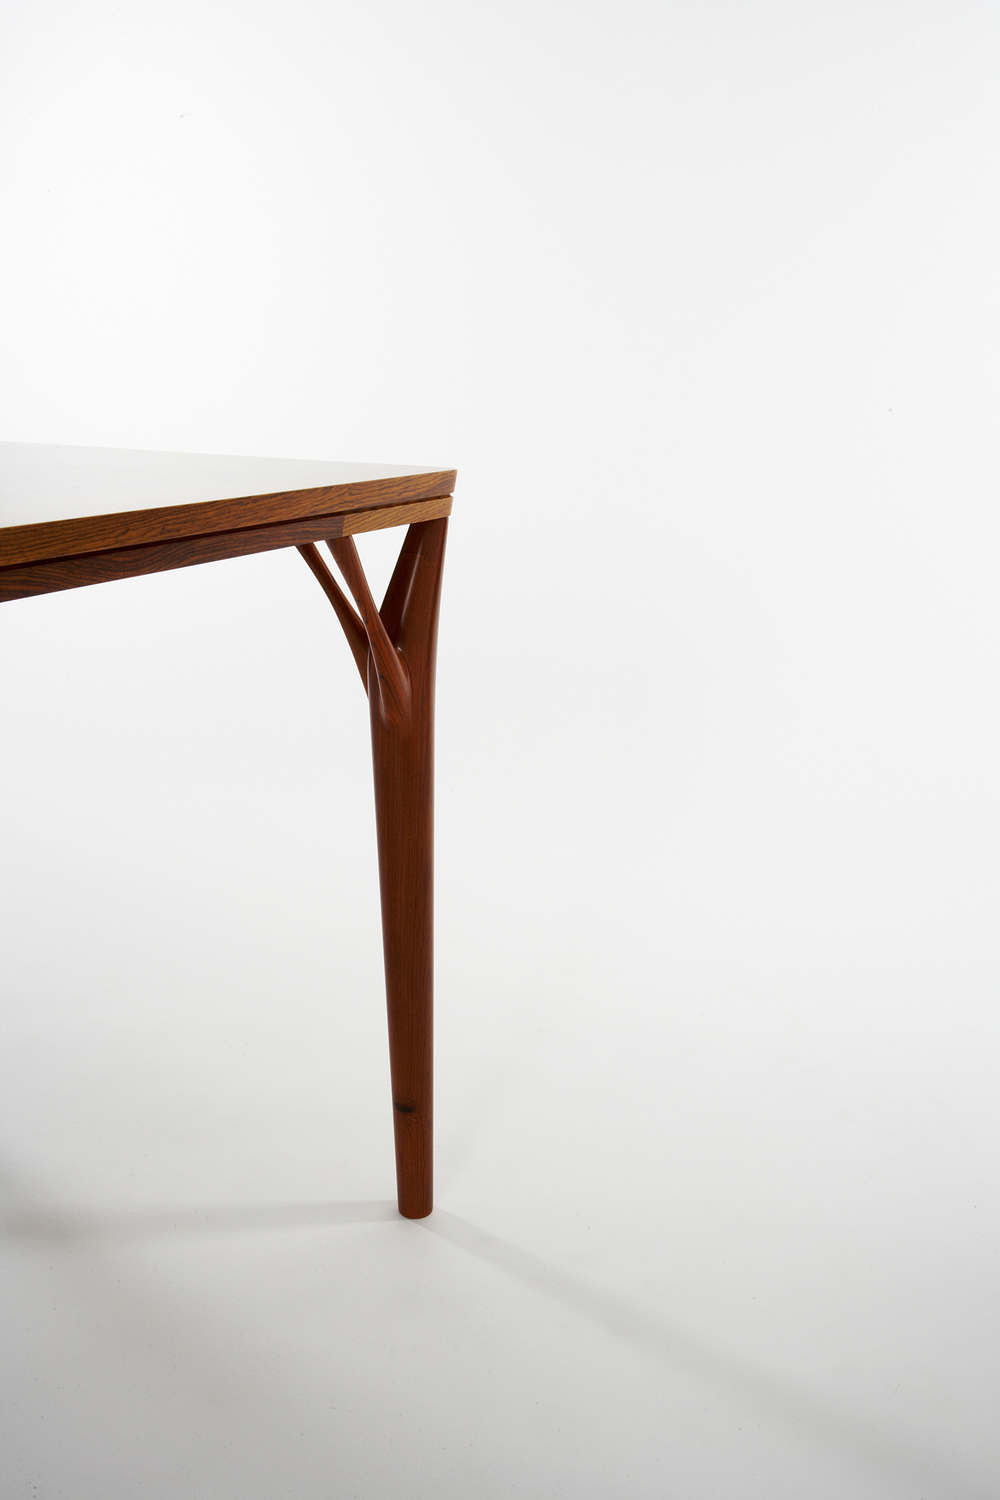 PD55 dining table8_resize.jpg